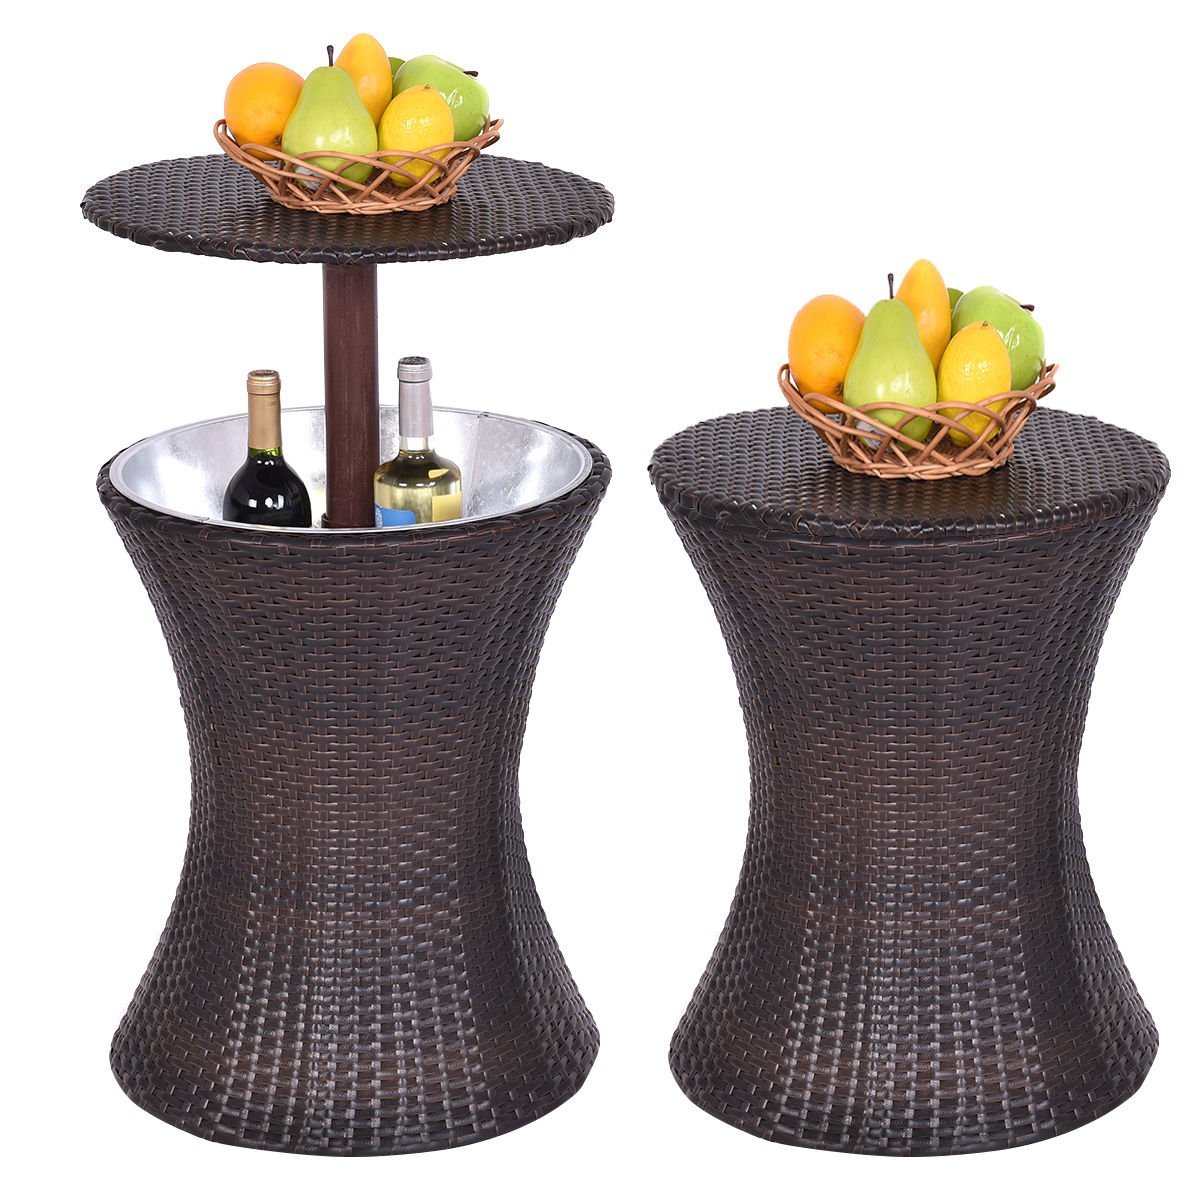 New MTN-G Adjustable Outdoor Patio Rattan Ice Cooler Cool Bar Table Party Deck Pool 1PC